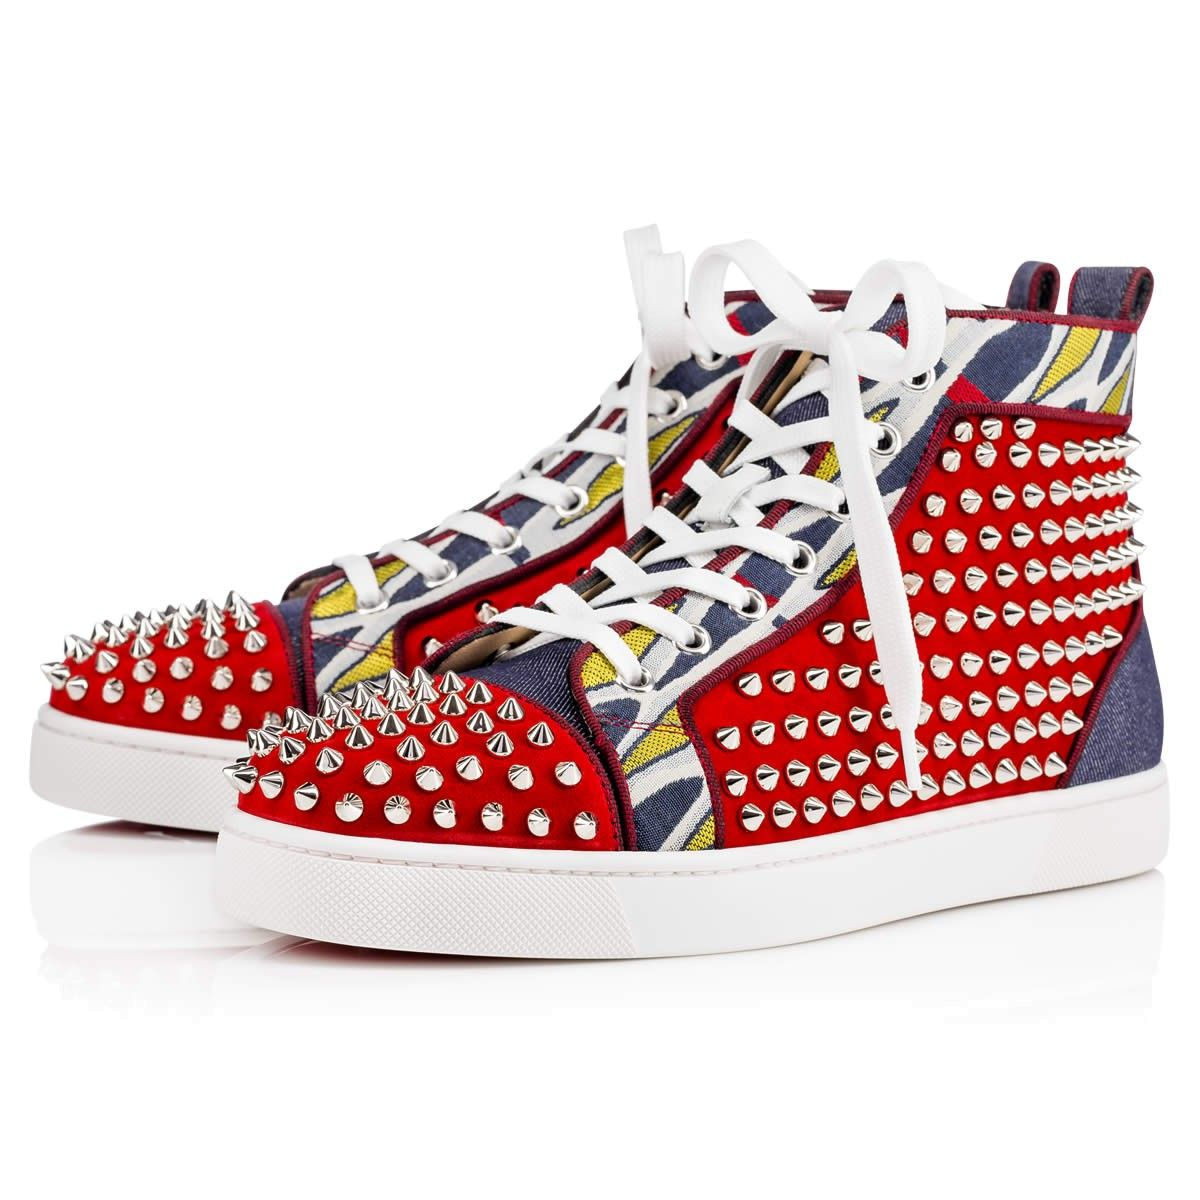 bda0216ab74 CHRISTIAN LOUBOUTIN Louis Spikes Orlato Men S Flat Version  Rougissime Silver Denim - Men Shoes - Christian Louboutin.   christianlouboutin  shoes